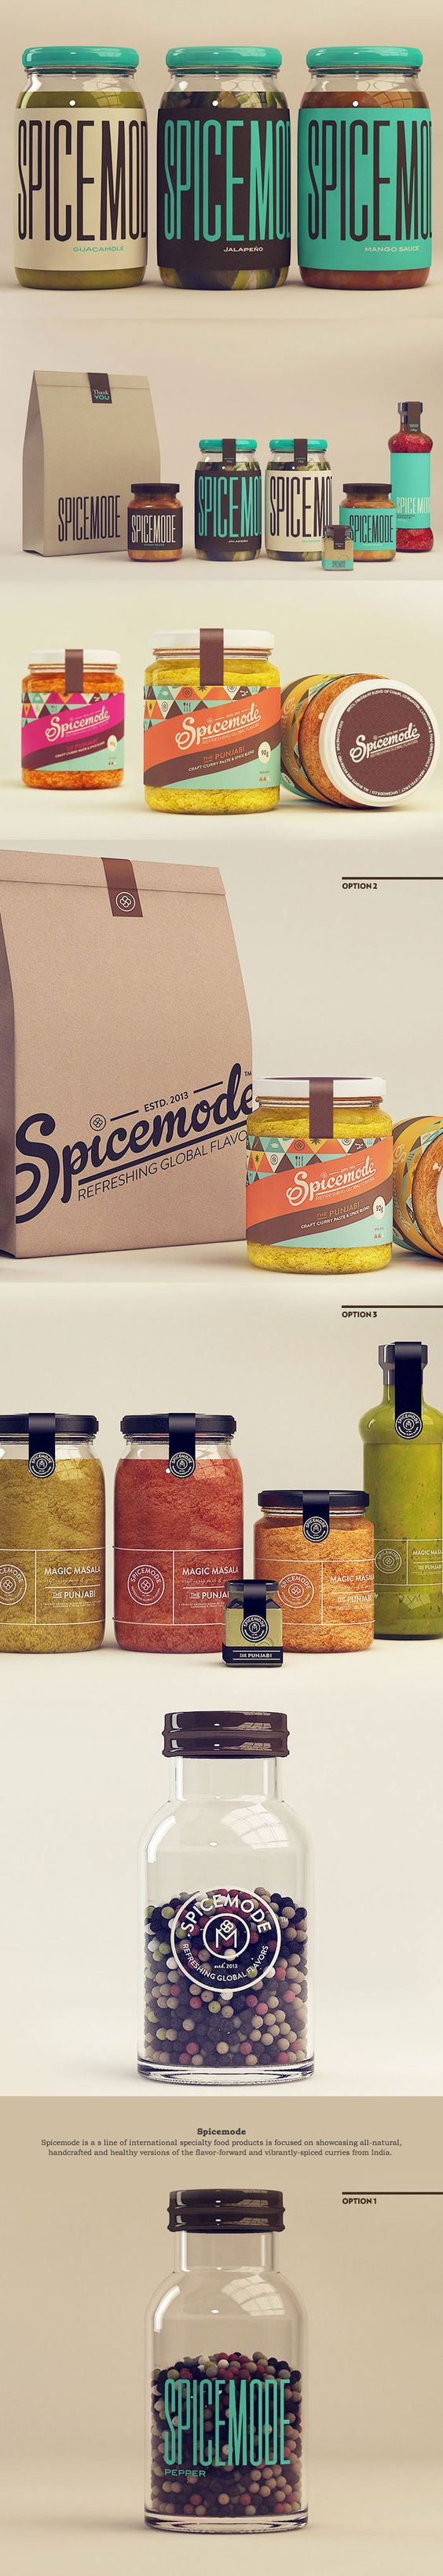 Branding Packaging Inspiration - WOW I love the type, love the bold colors it feels modern, funky and hip